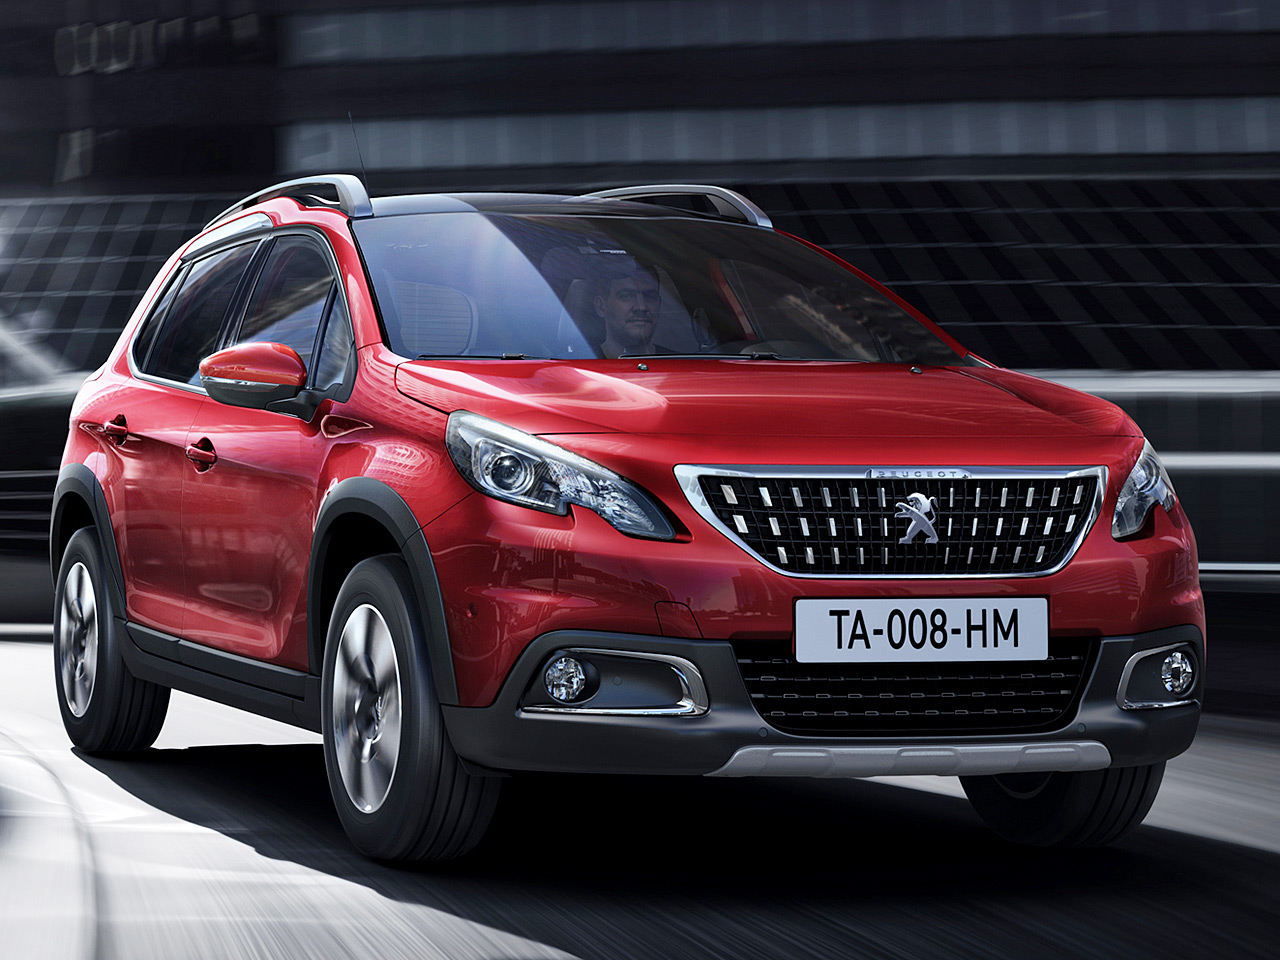 peugeot 2008 facelift 1 generation 2017 preis. Black Bedroom Furniture Sets. Home Design Ideas